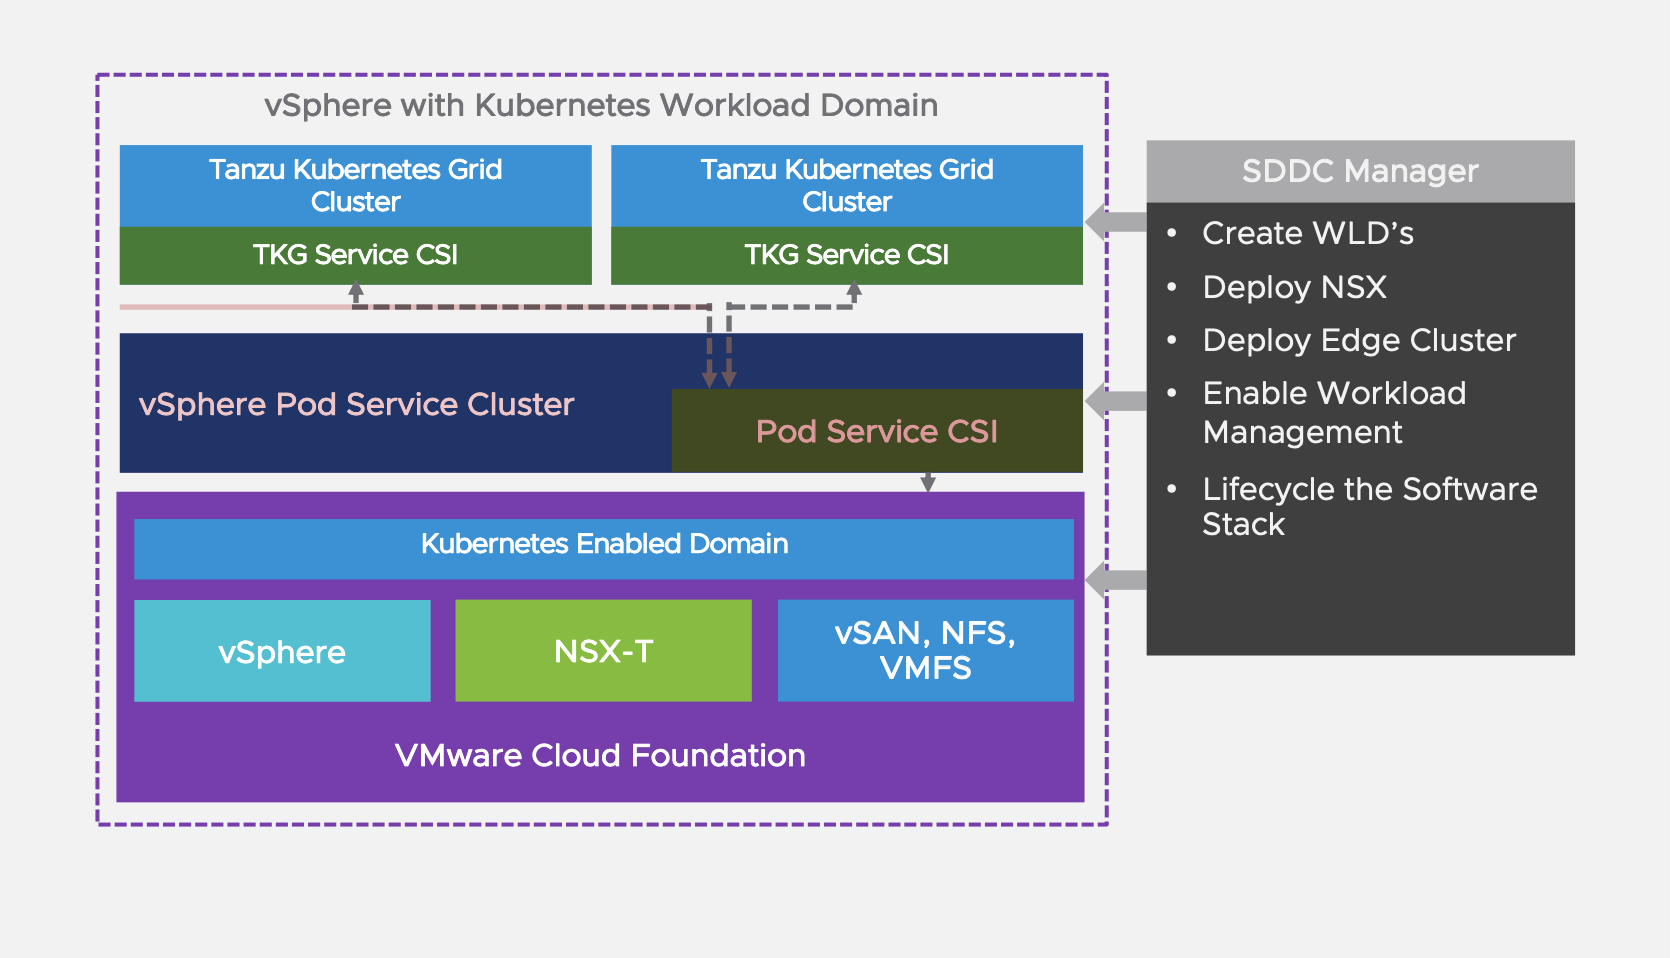 vSphere with Kubernetes Workload Domain